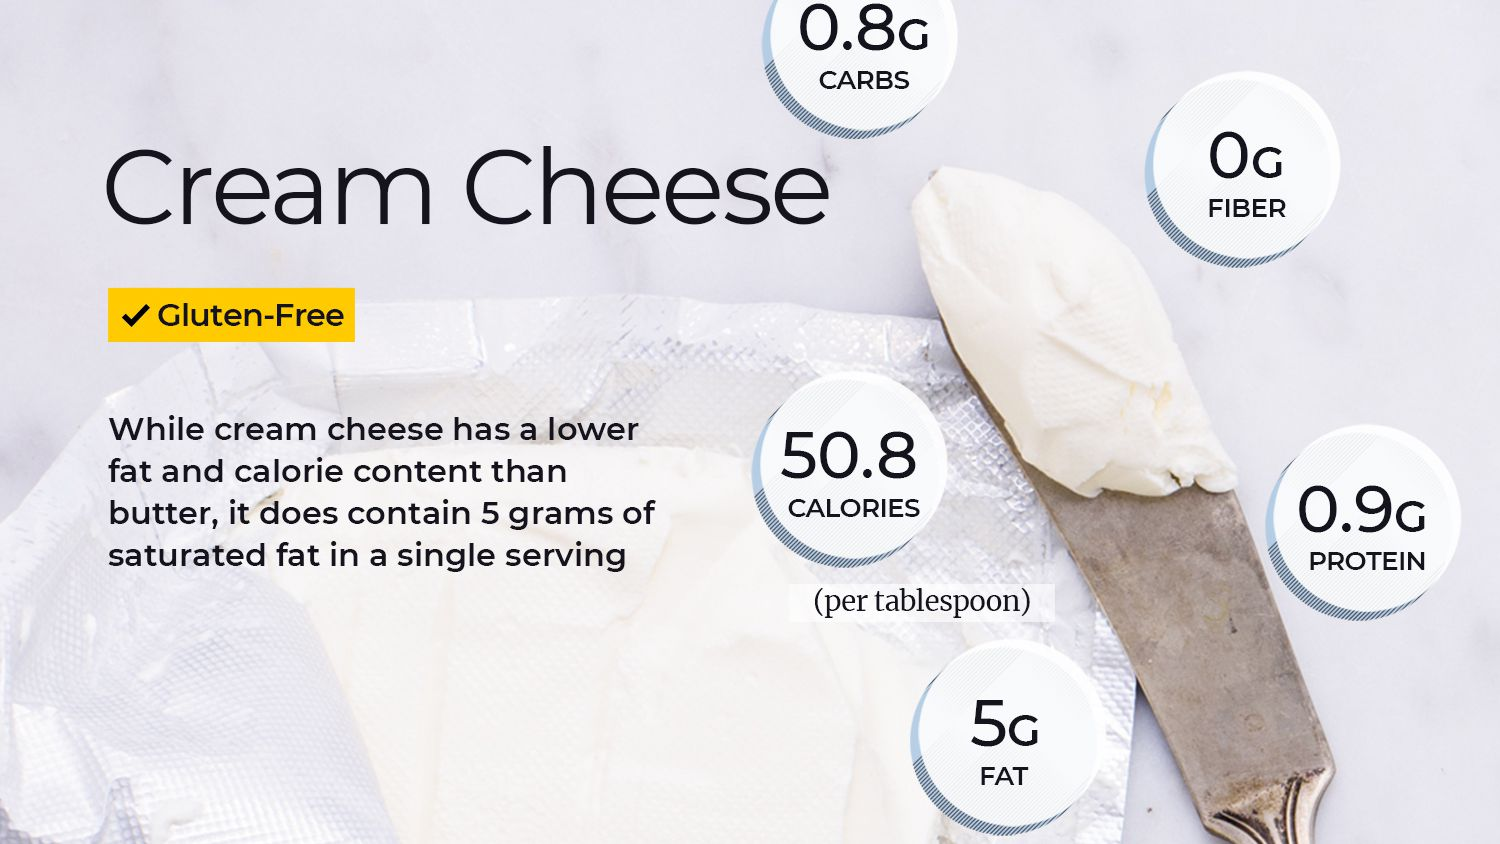 Cream Cheese Nutrition Calories Carbs And Health Benefits